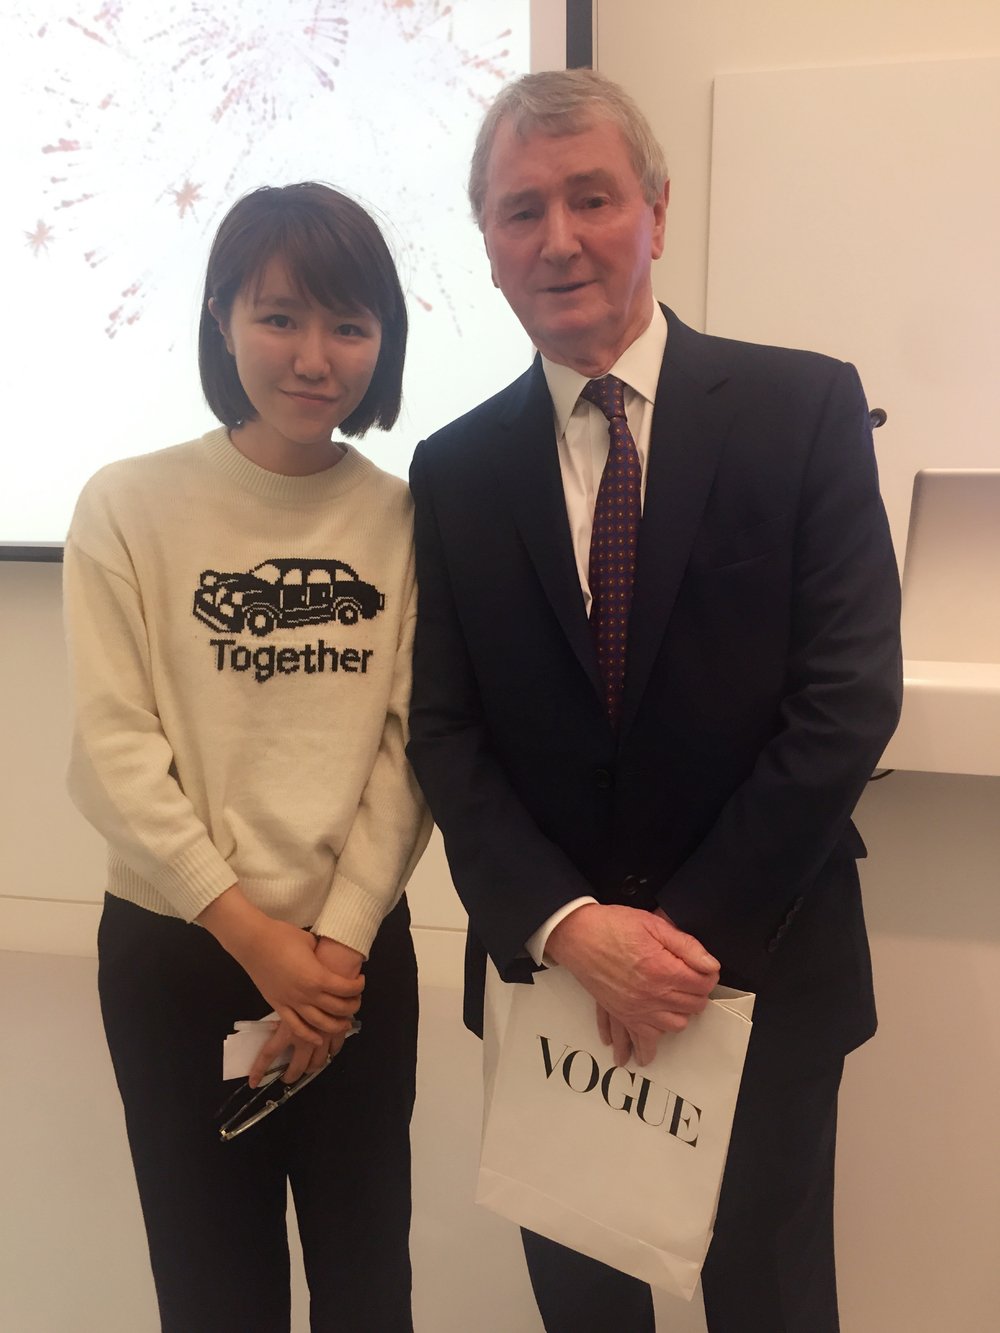 With Stephen Quinn - Publisher of Vogue